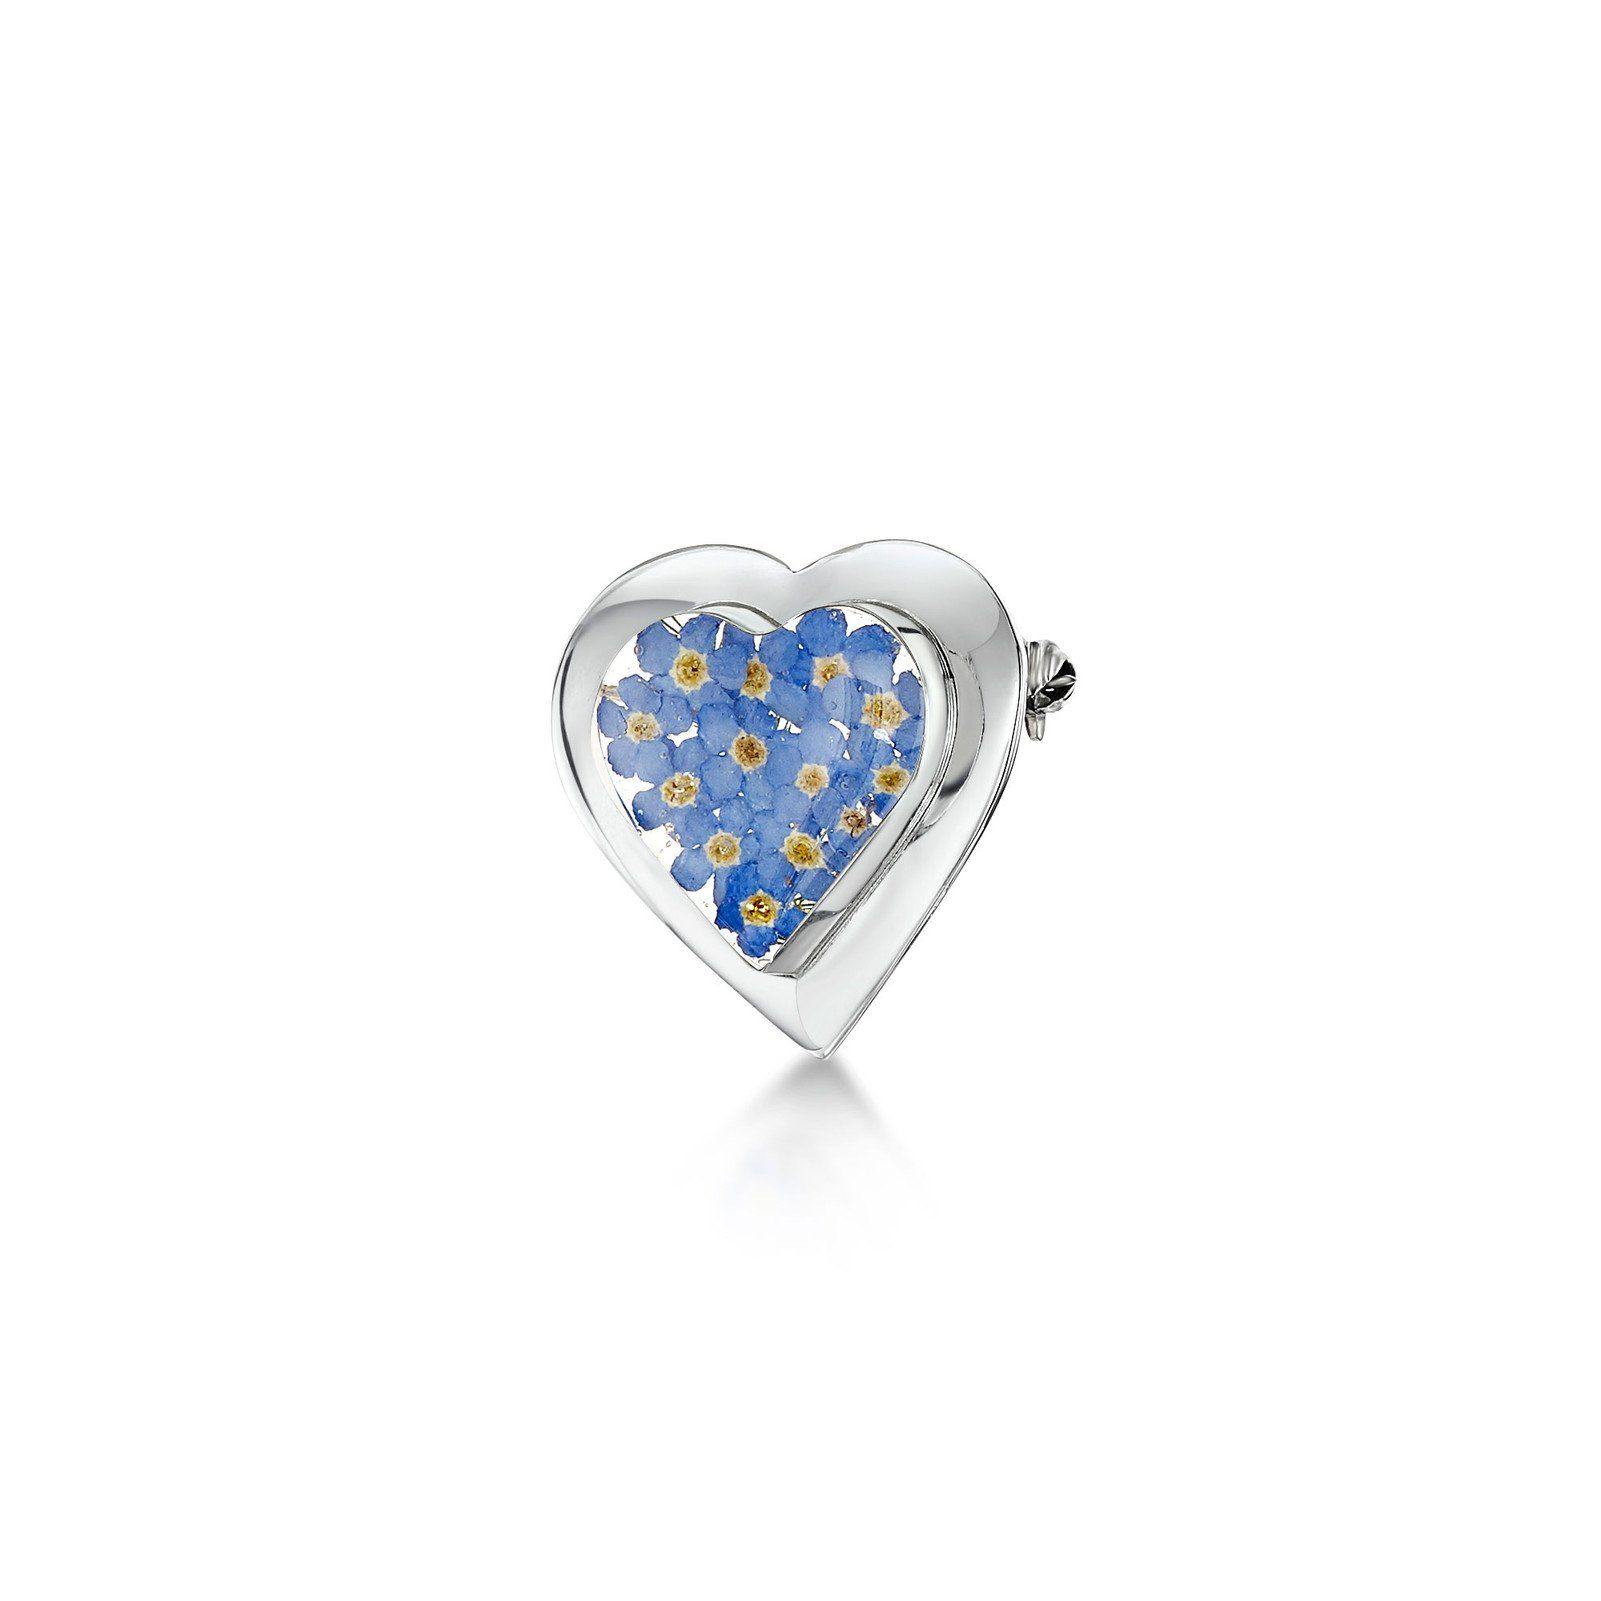 Silver heart-shaped brooch set with real forget me not flowers